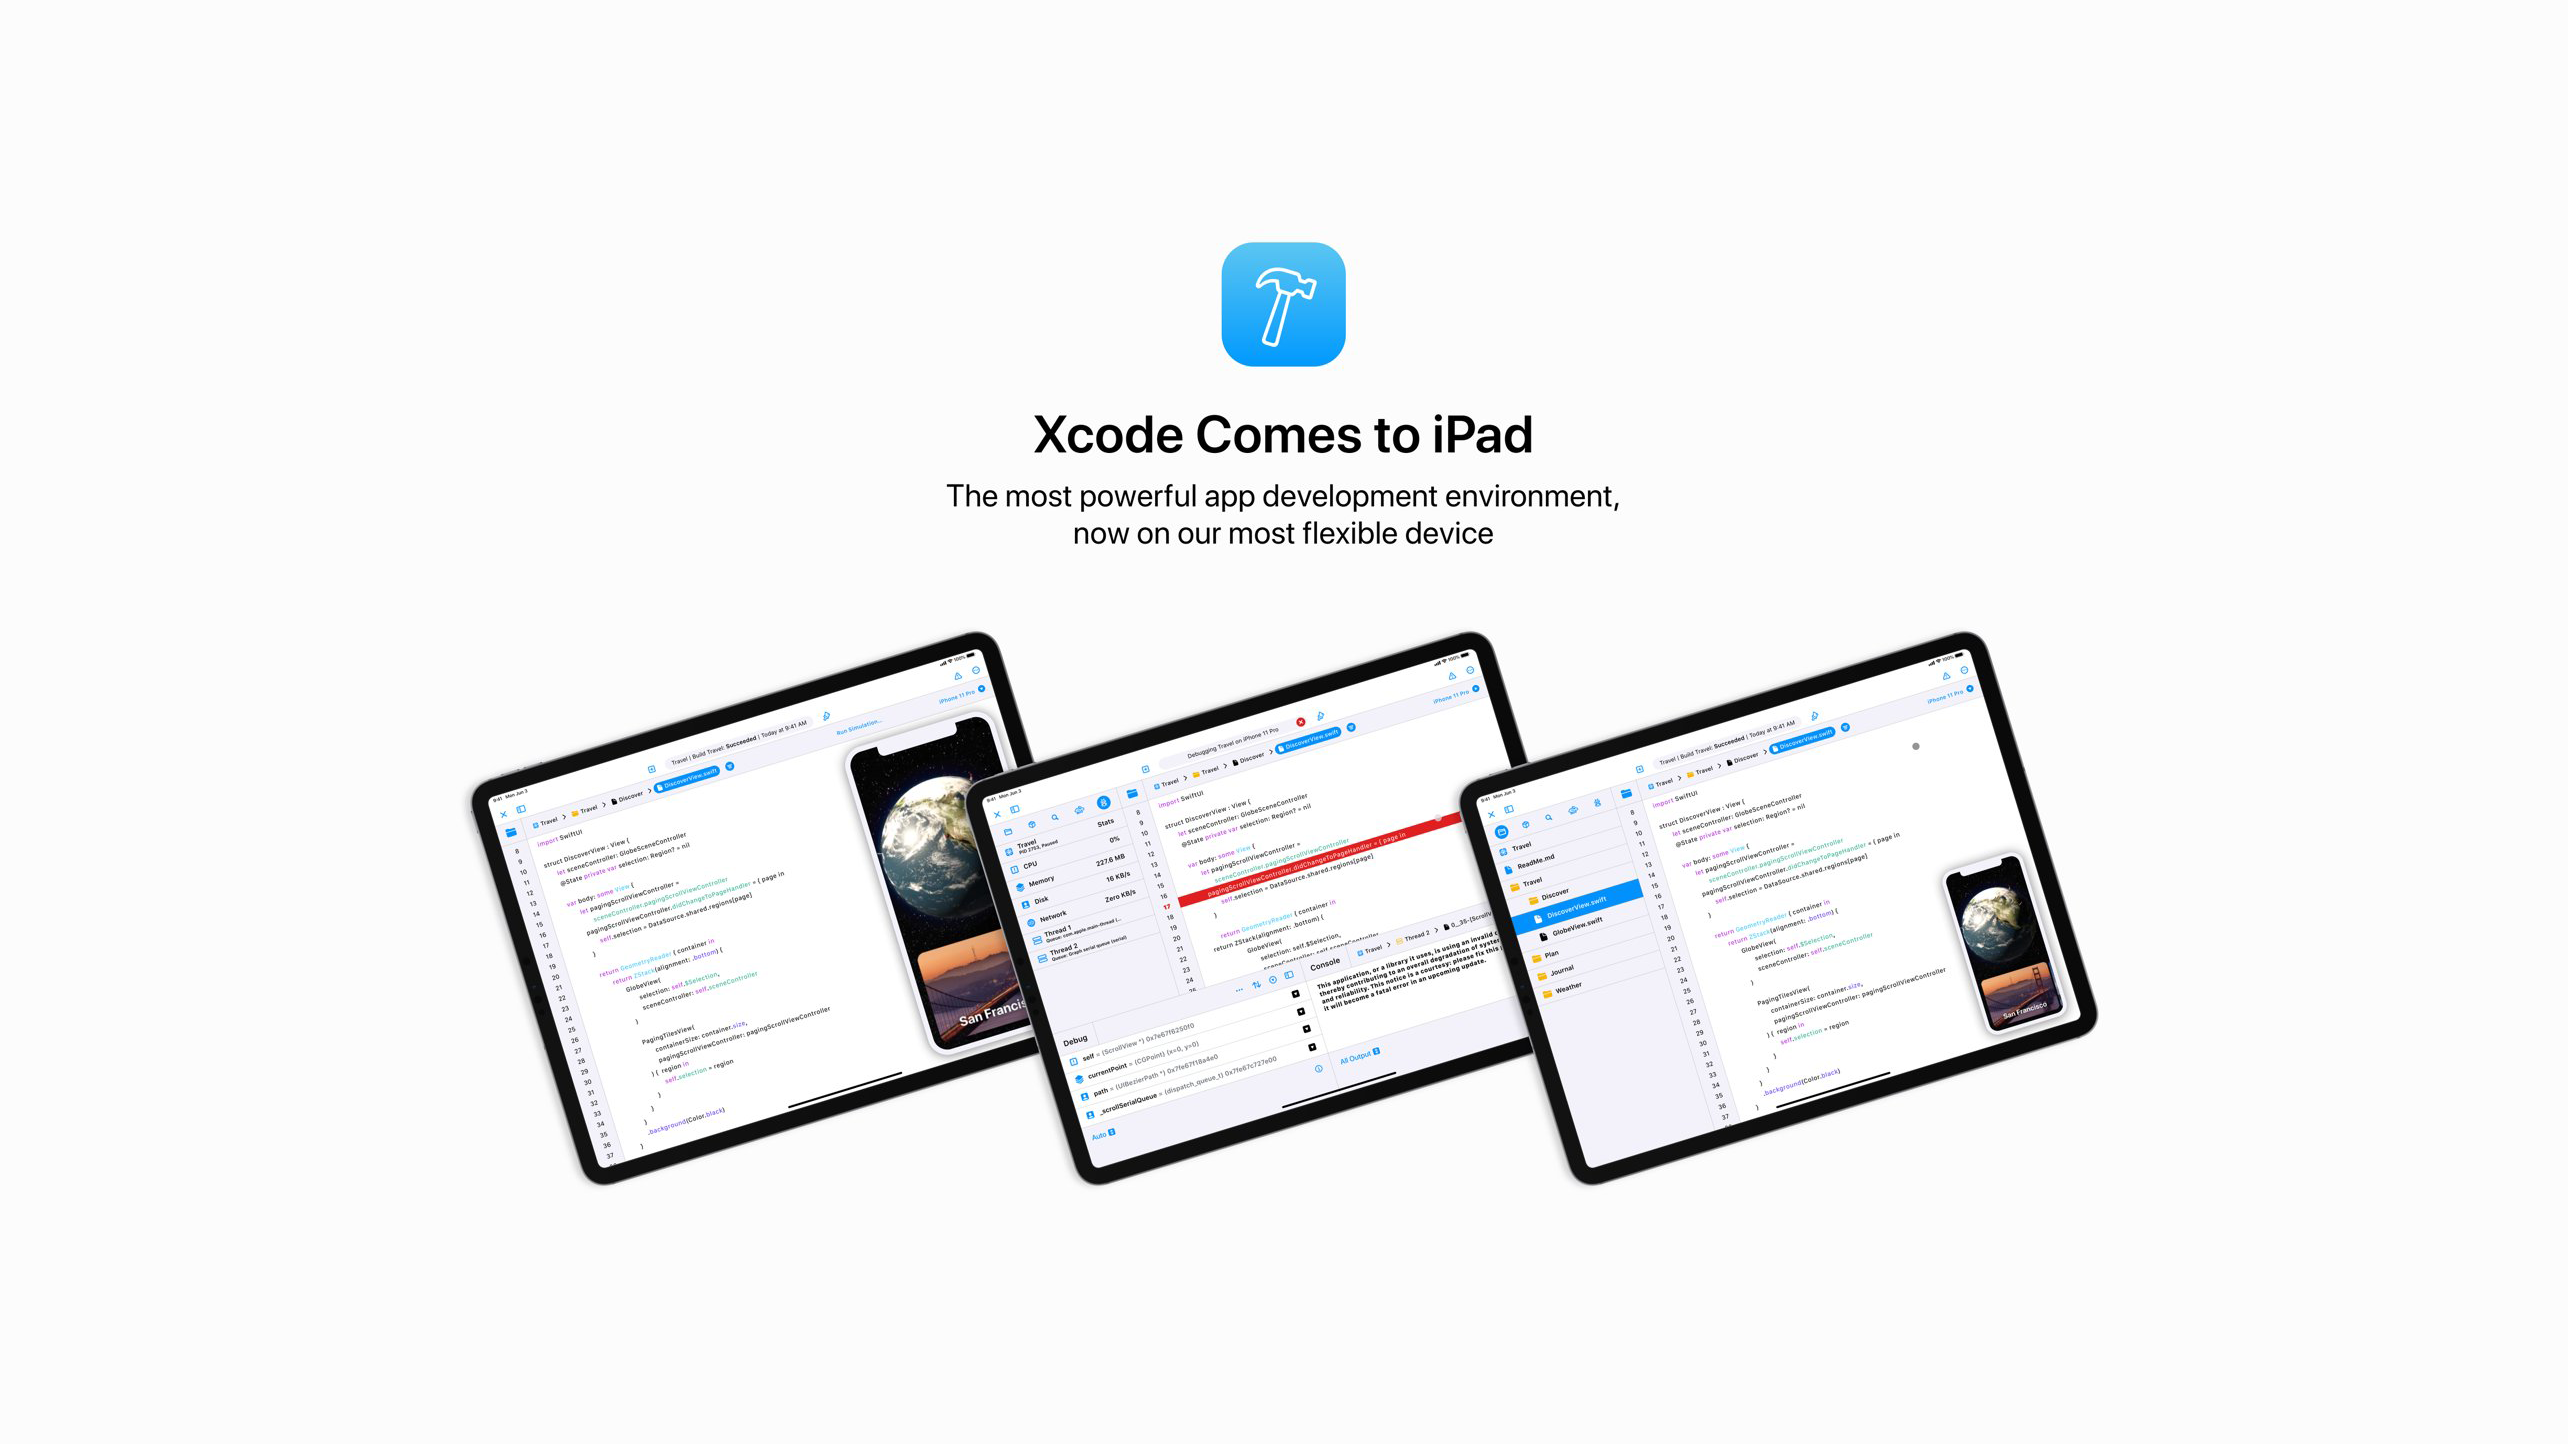 New concept imagines how Apple could recreate Xcode for